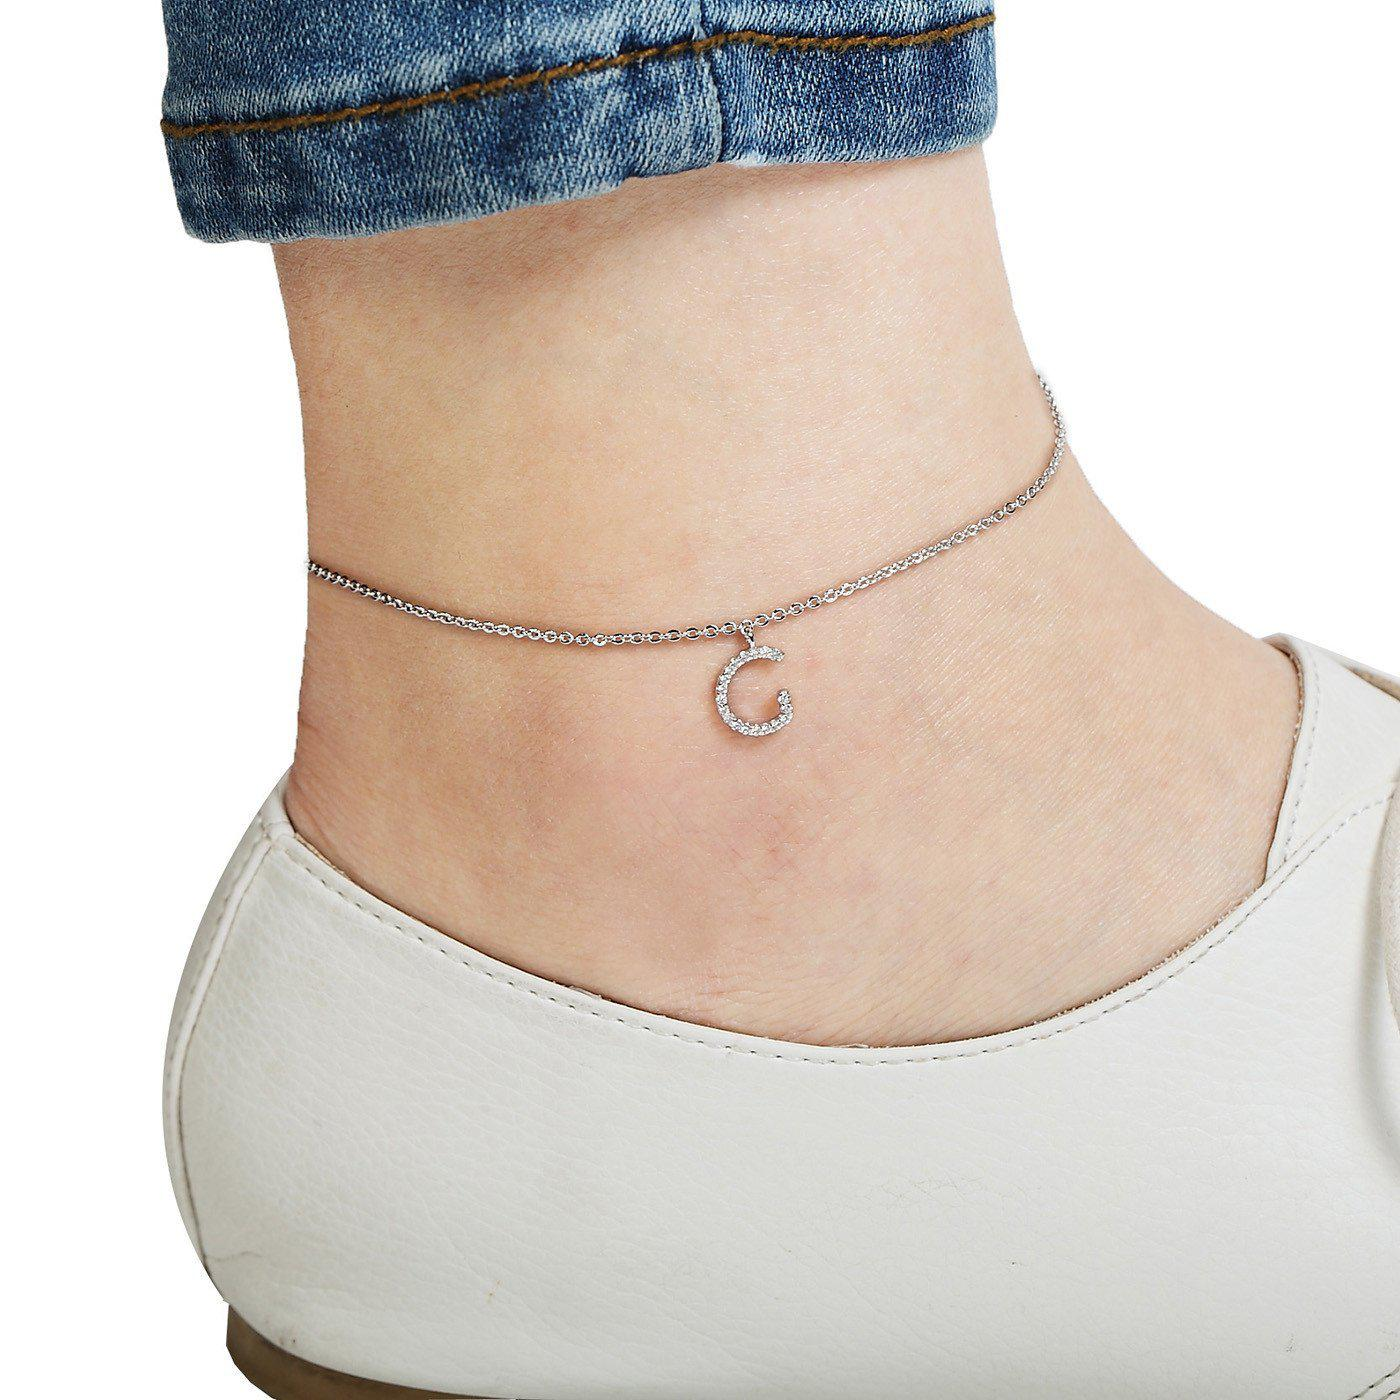 Your Initial G Anklet-Blinglane